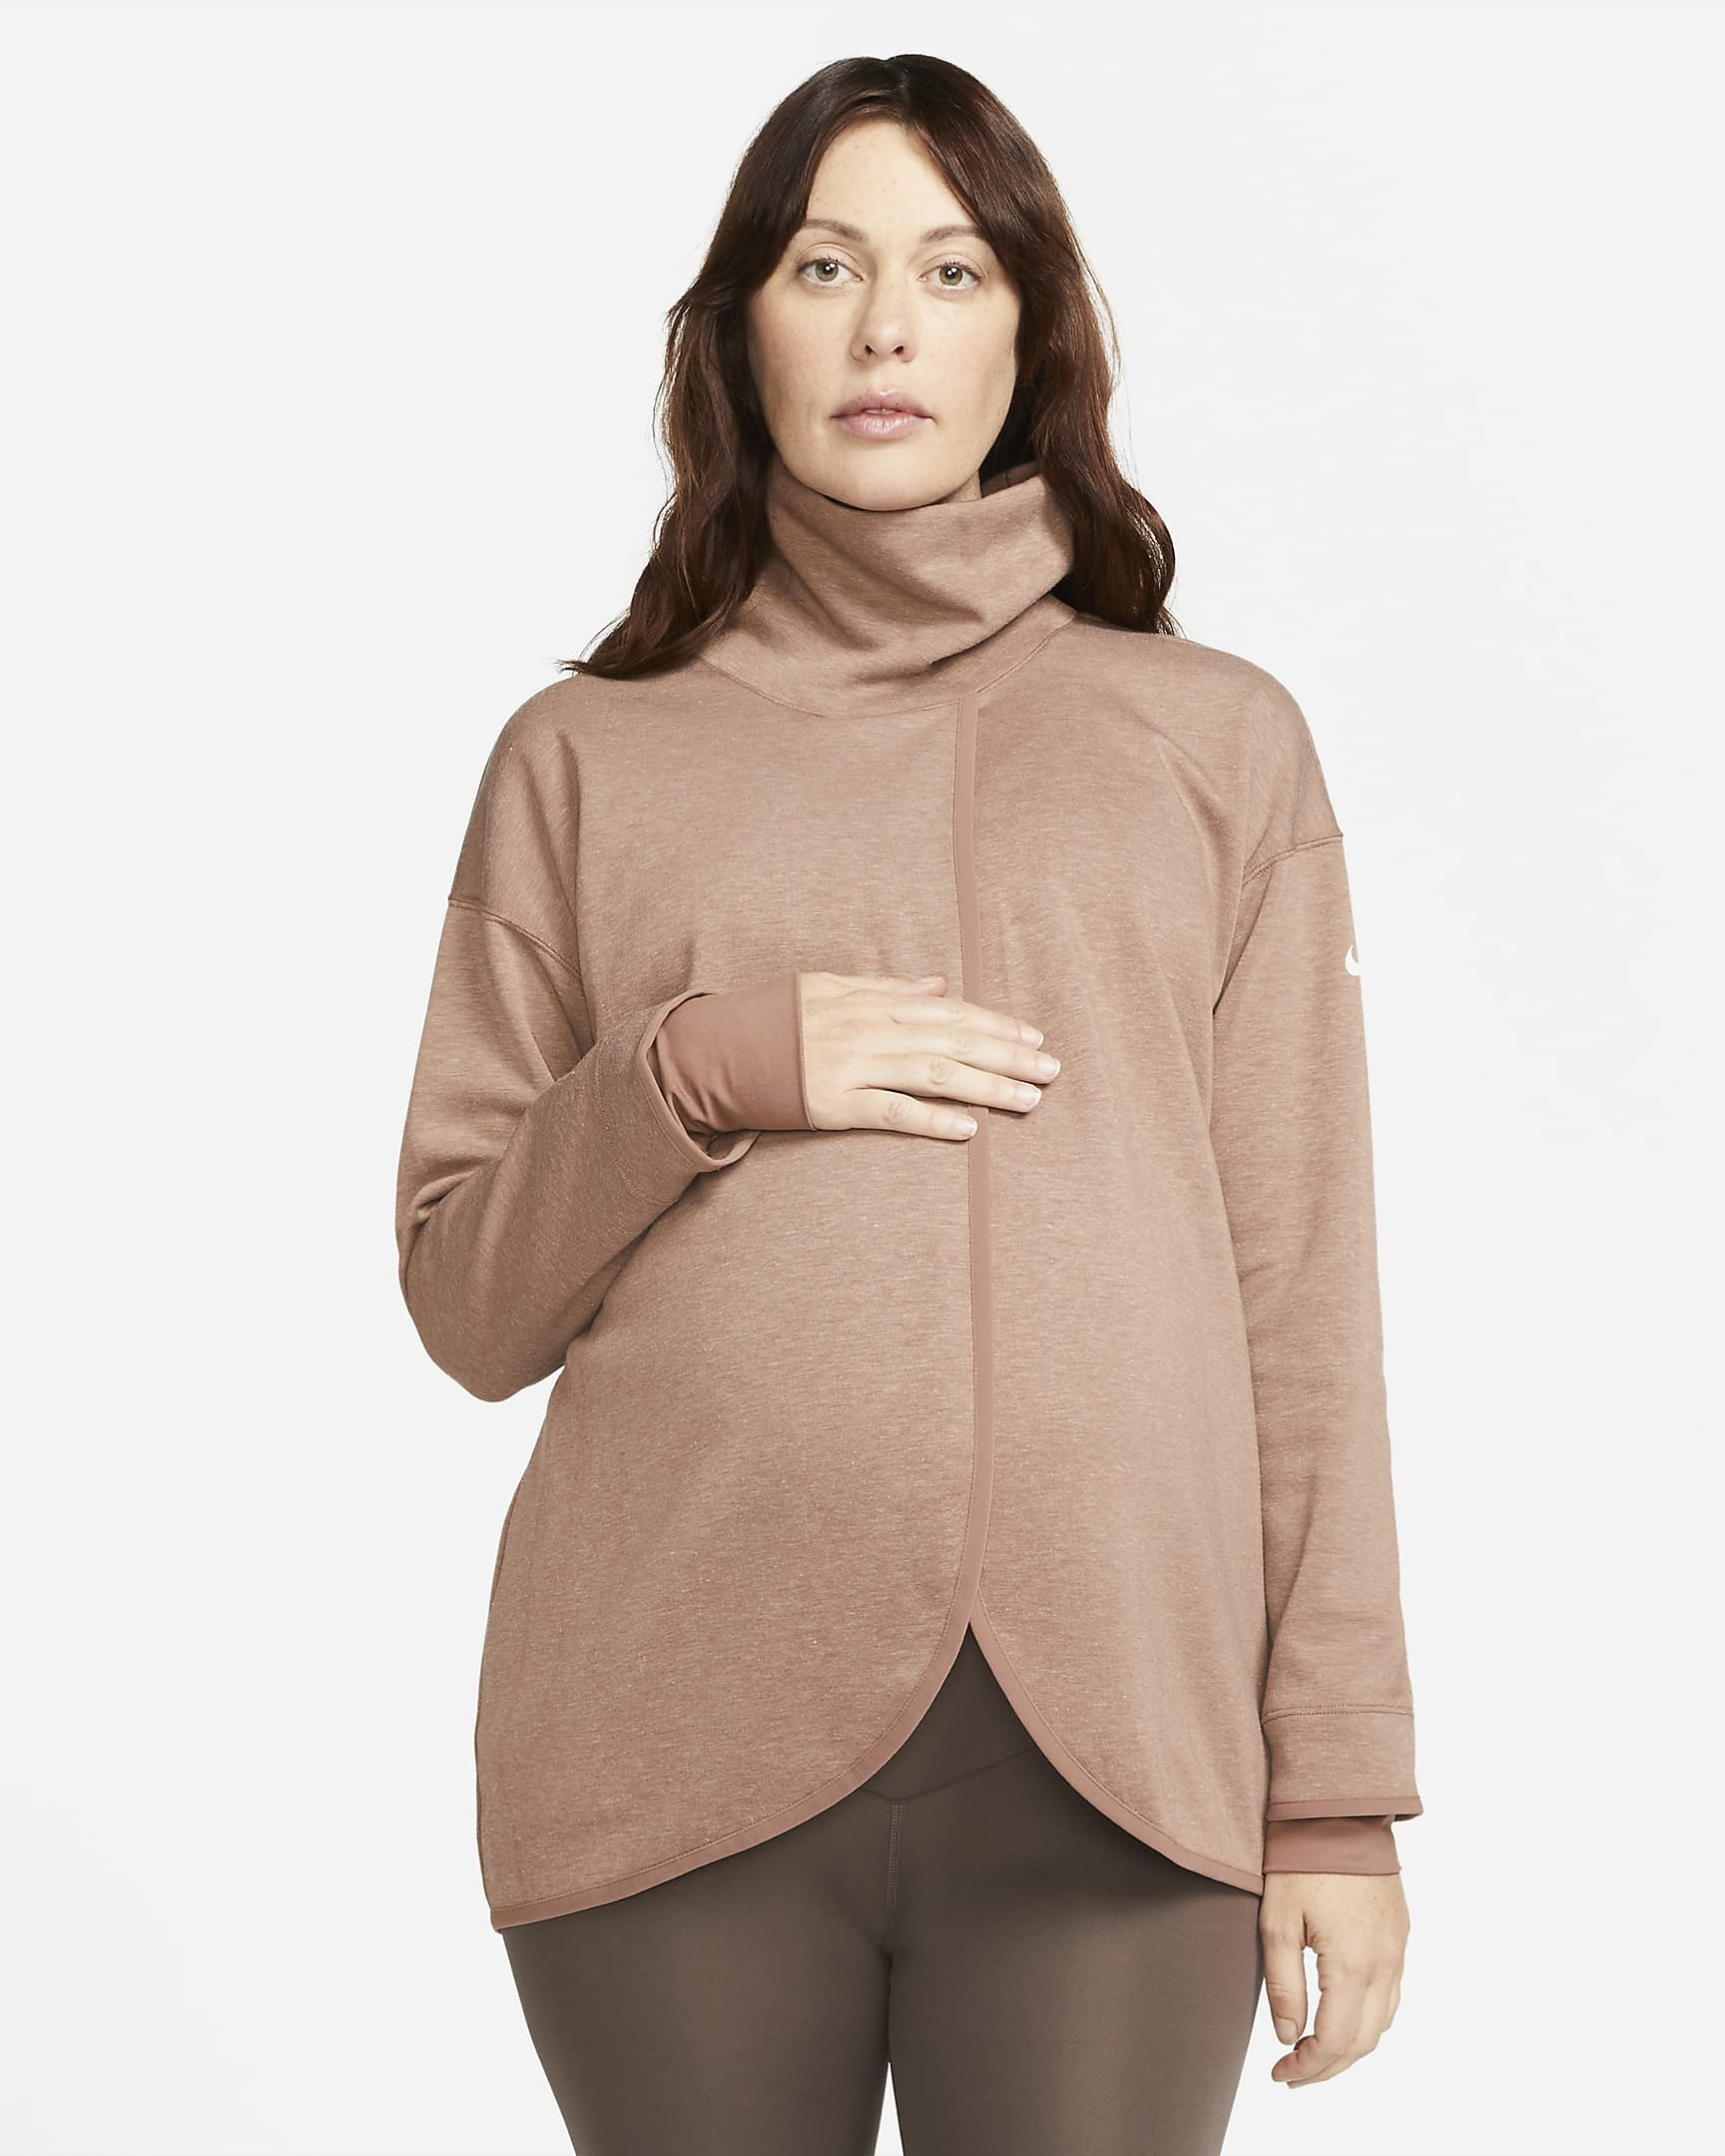 Model wearing brown crossover maternity pullover